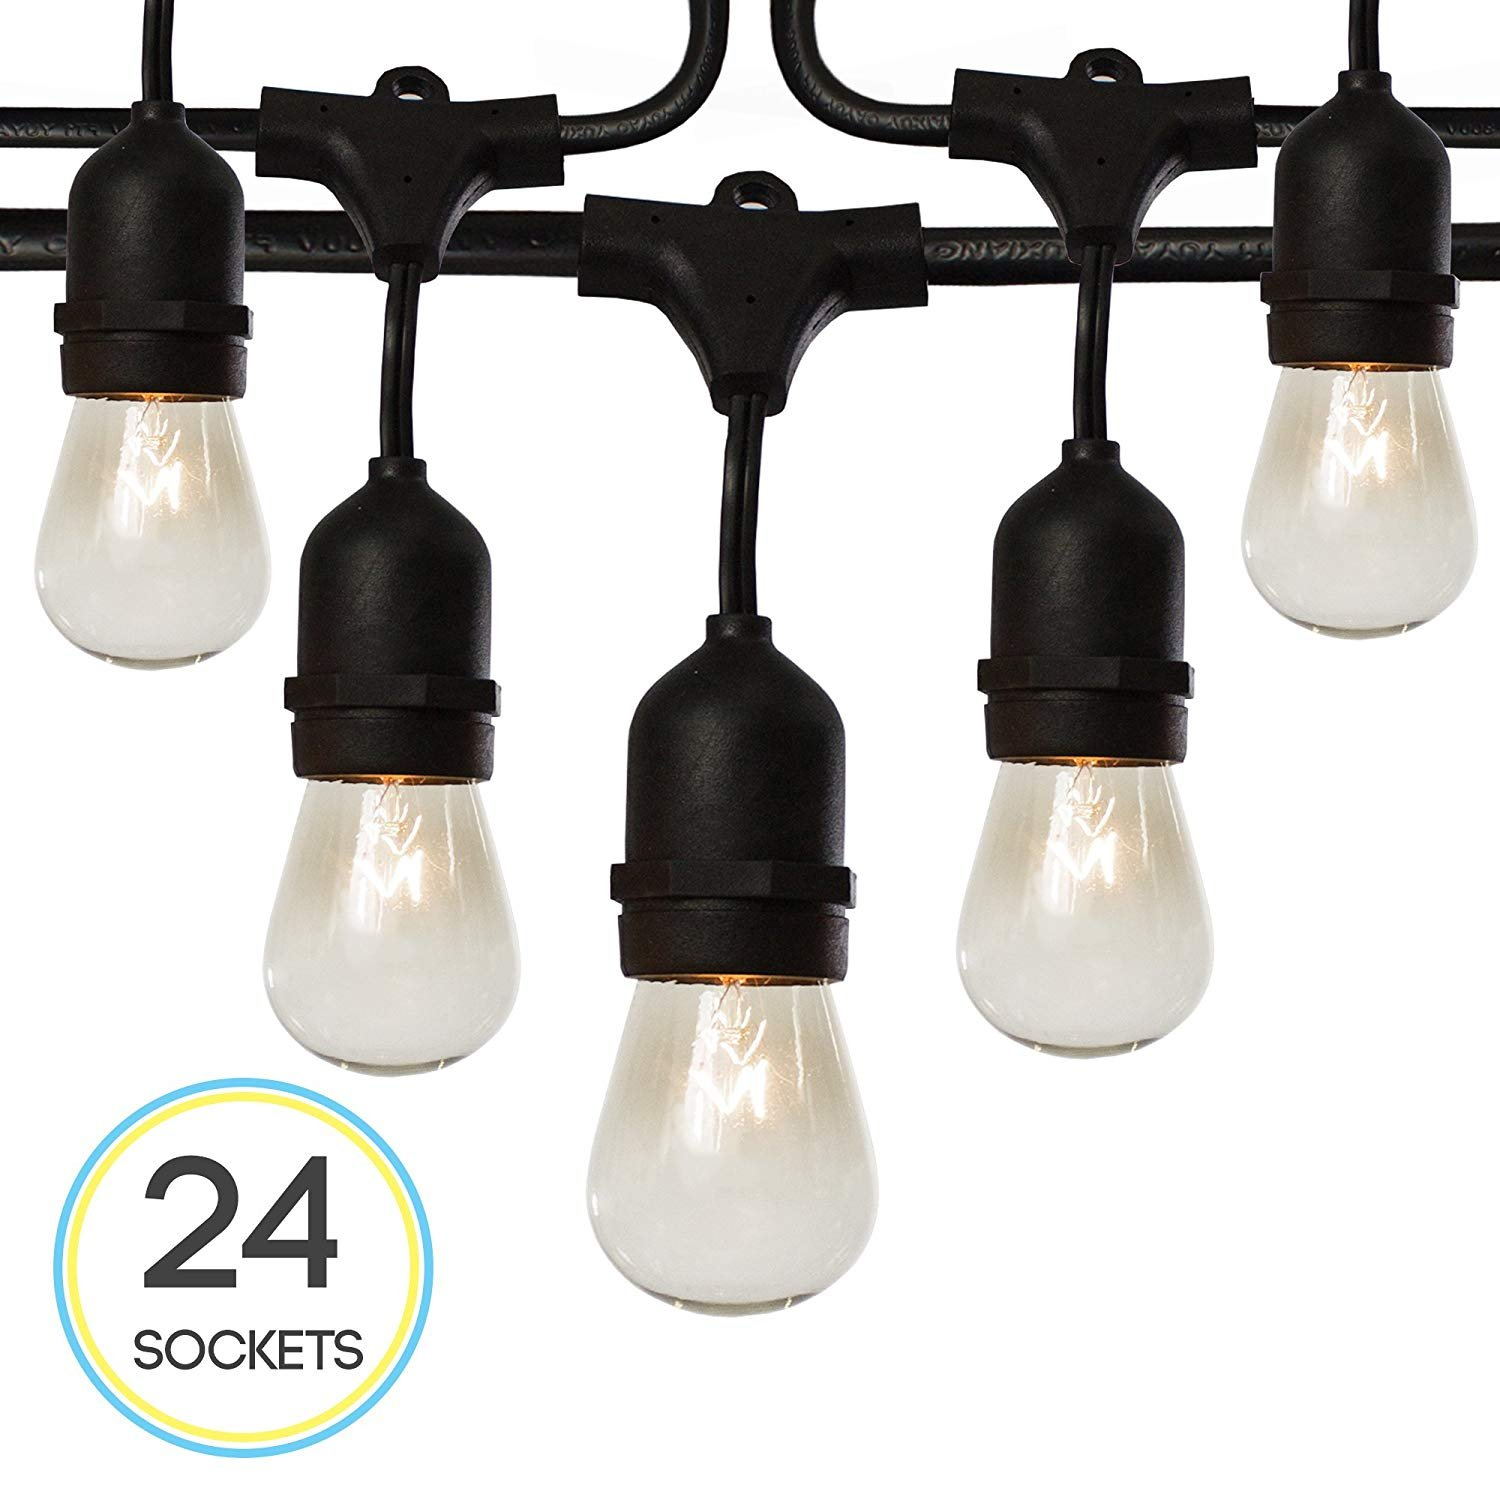 Fulton Illuminations S14 24 Bulbs Outdoor String Lights with 6 Extra Bulbs and 13 Ft Extension Cord, 48 Feet - Commercial Weatherproof Patio String Lights